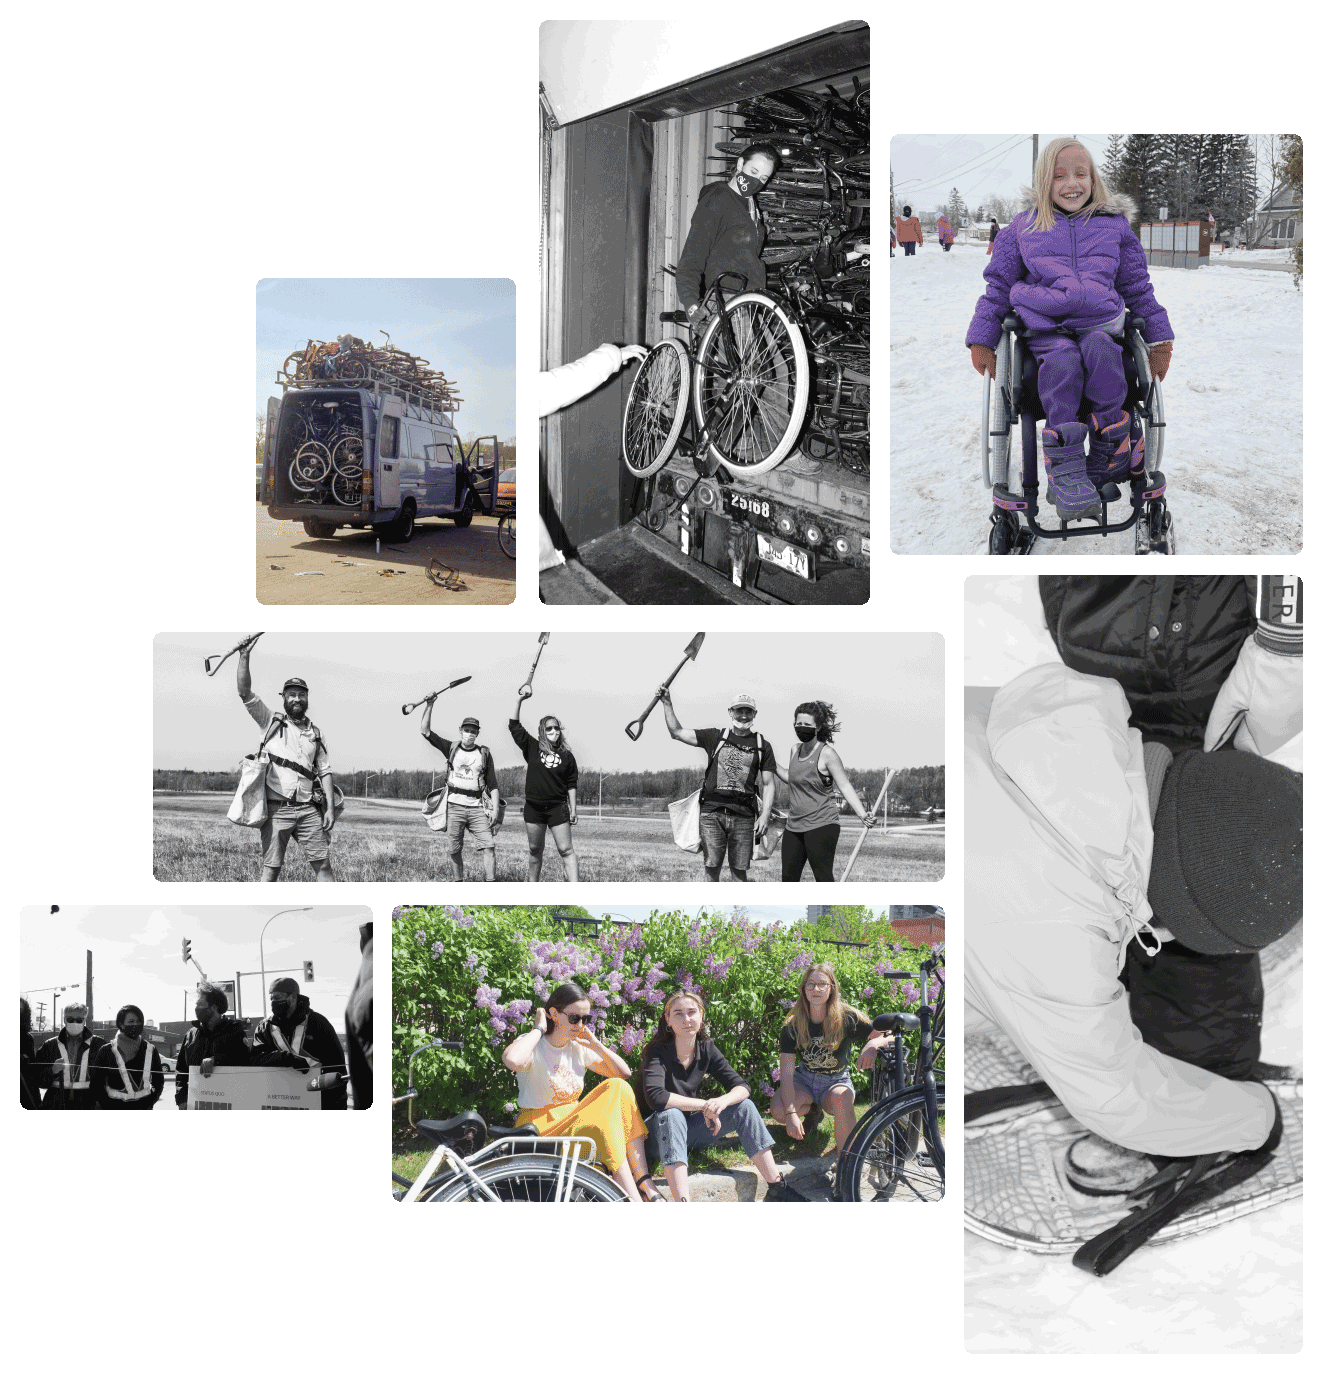 Image grid showing the different work that Winnipeg Trails Association does